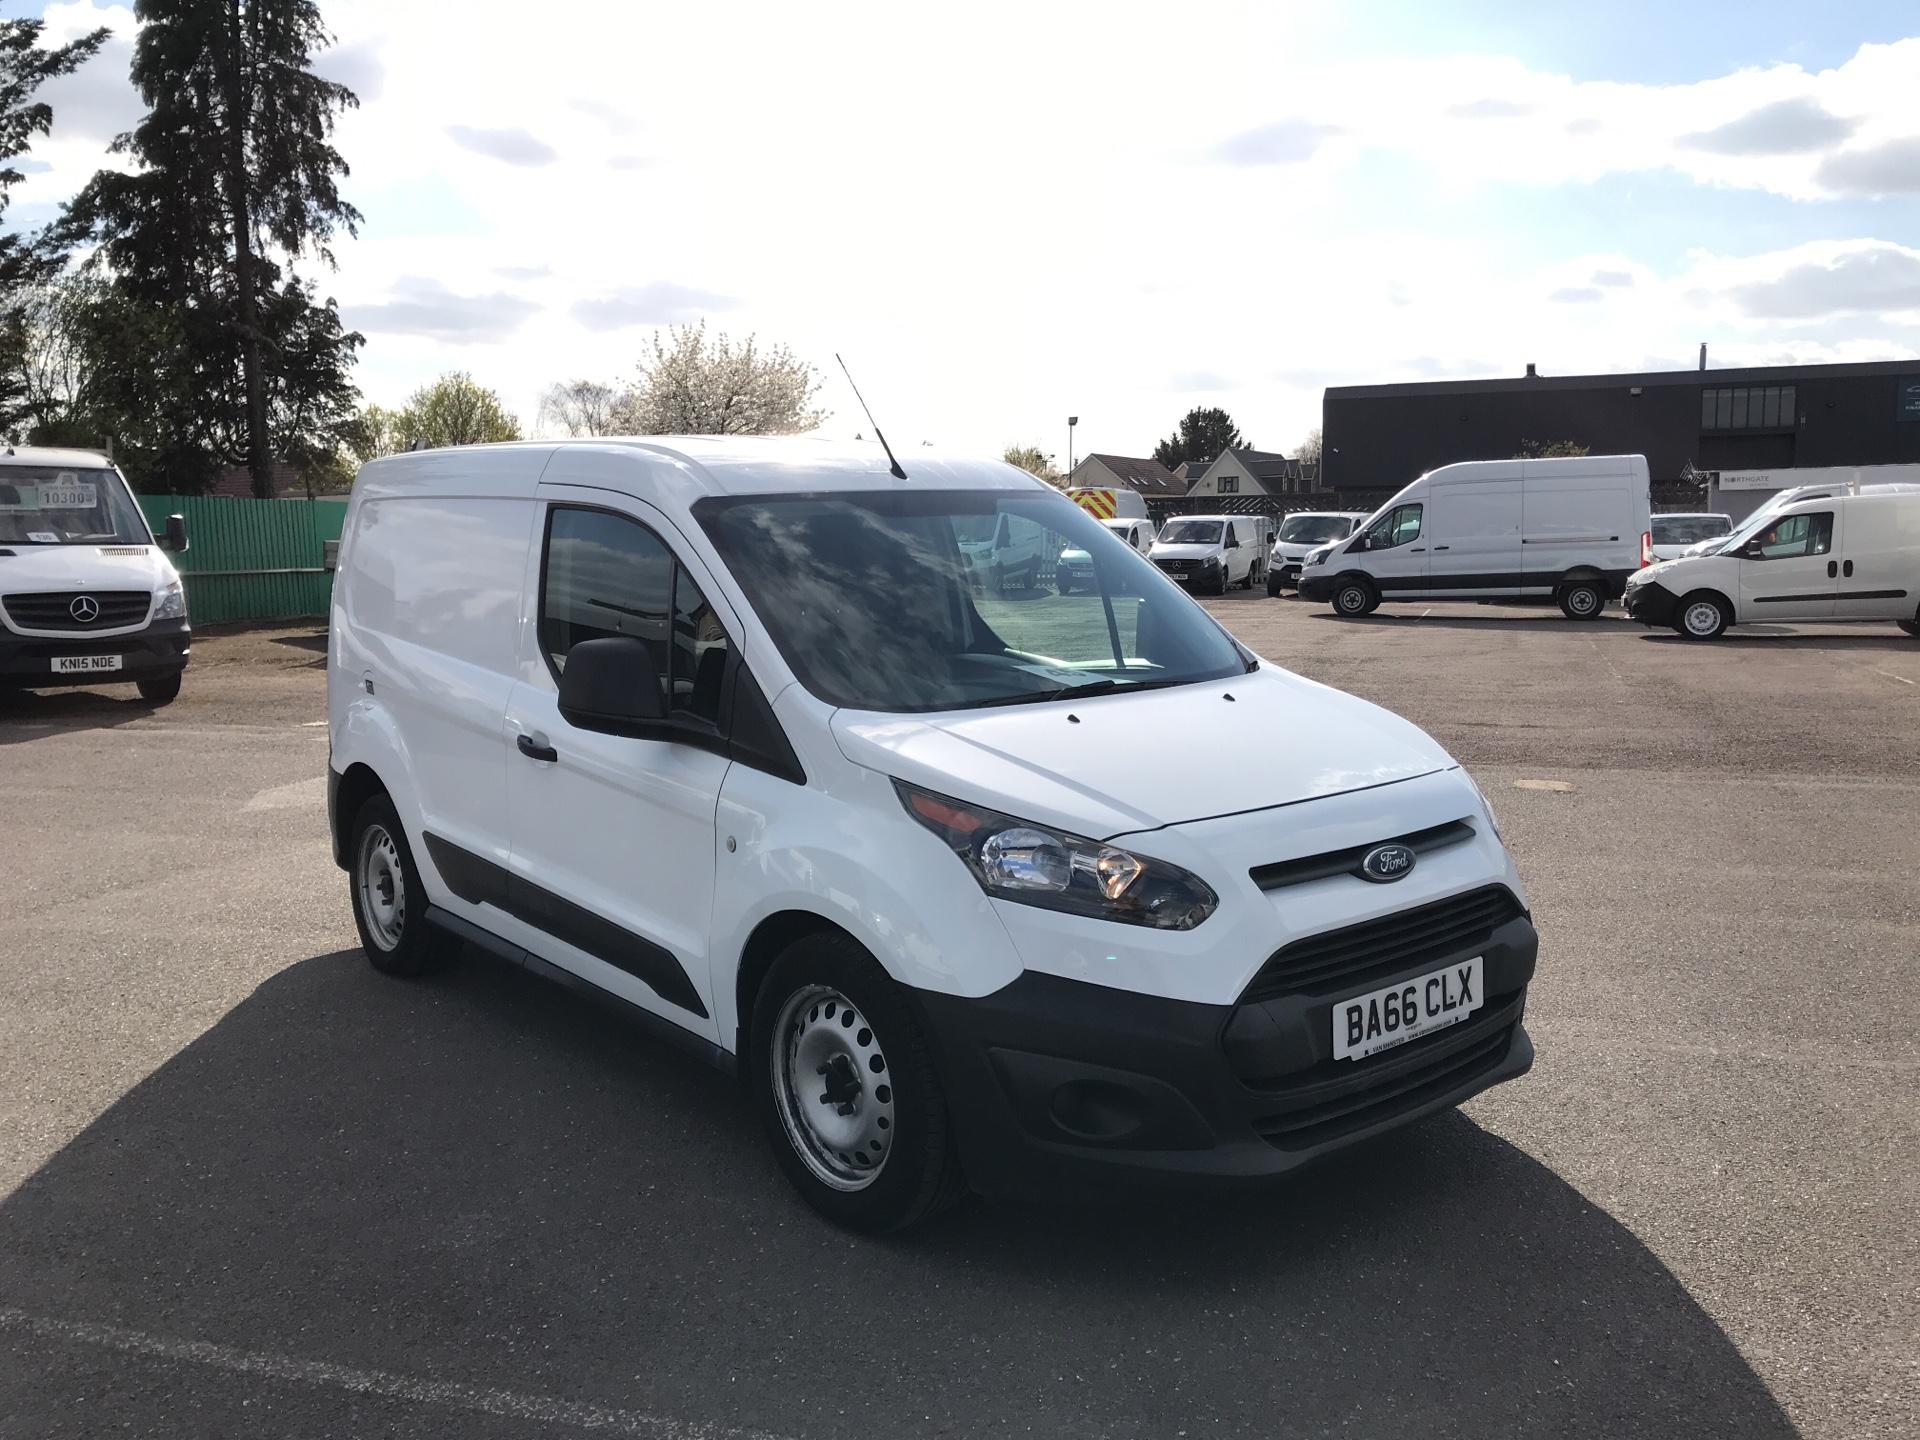 2017 Ford Transit Connect 1.5 Tdci 100Ps Van EURO 6 (BA66CLX)